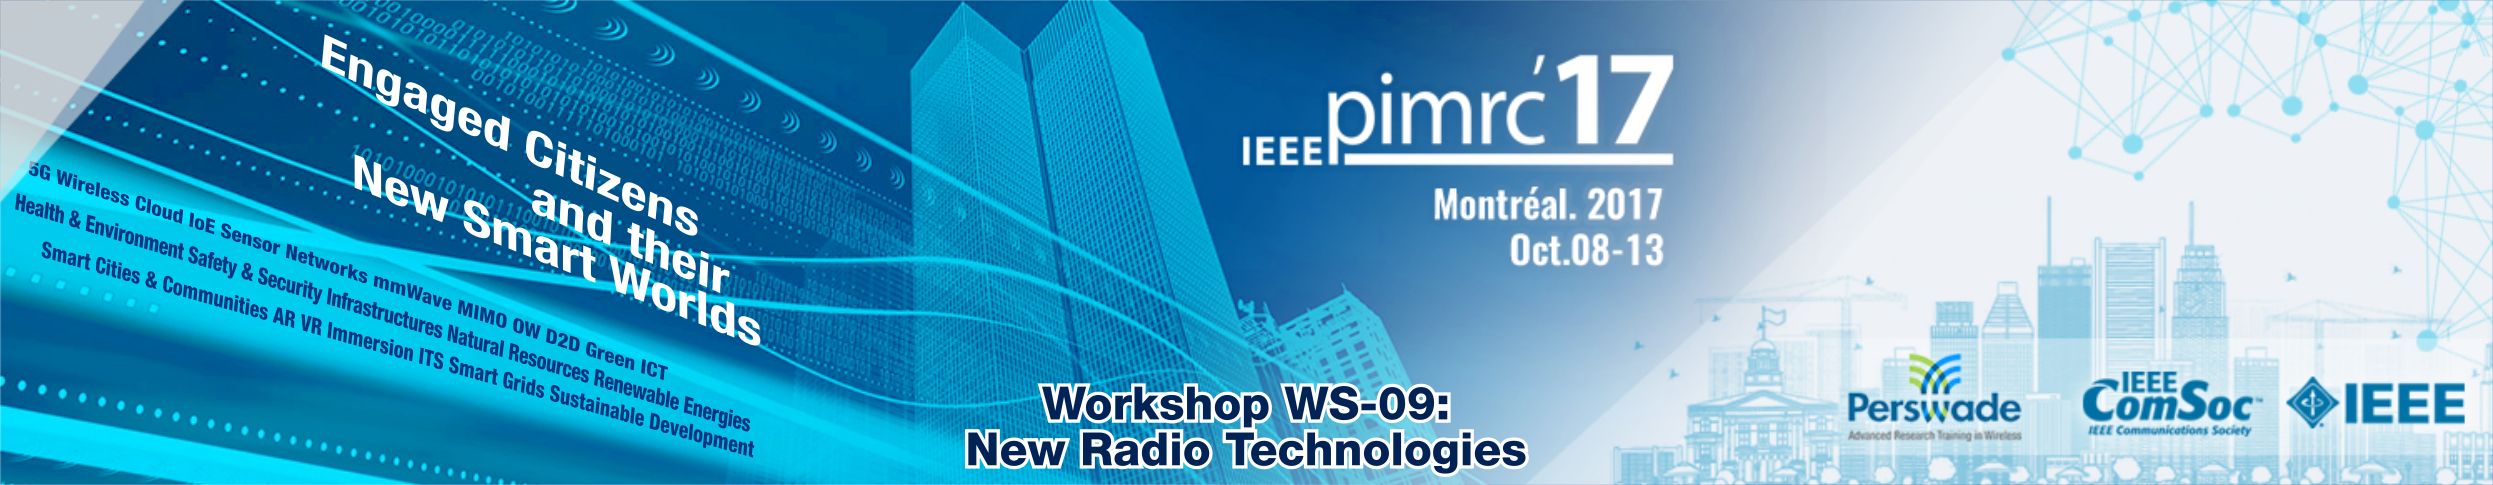 IEEE PIMRC 2017 Workshop WS-09